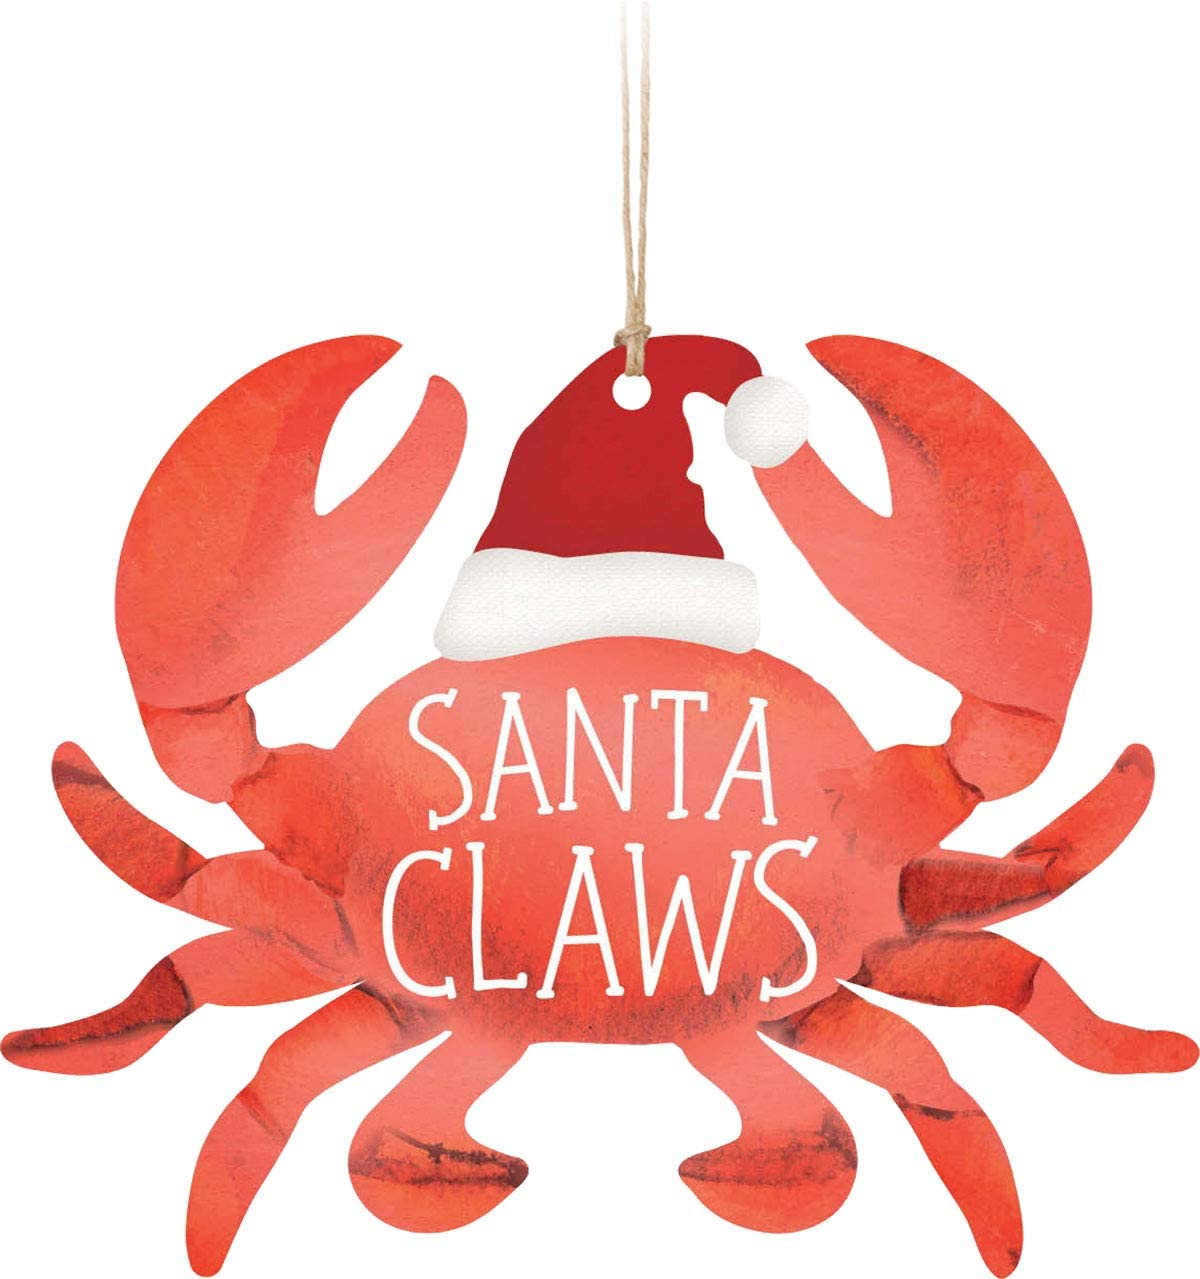 Amazon Com Santa Claws Rosy Red 3 8 X 3 Wood Decorative Hanging Figurine Ornament Kitchen Dining